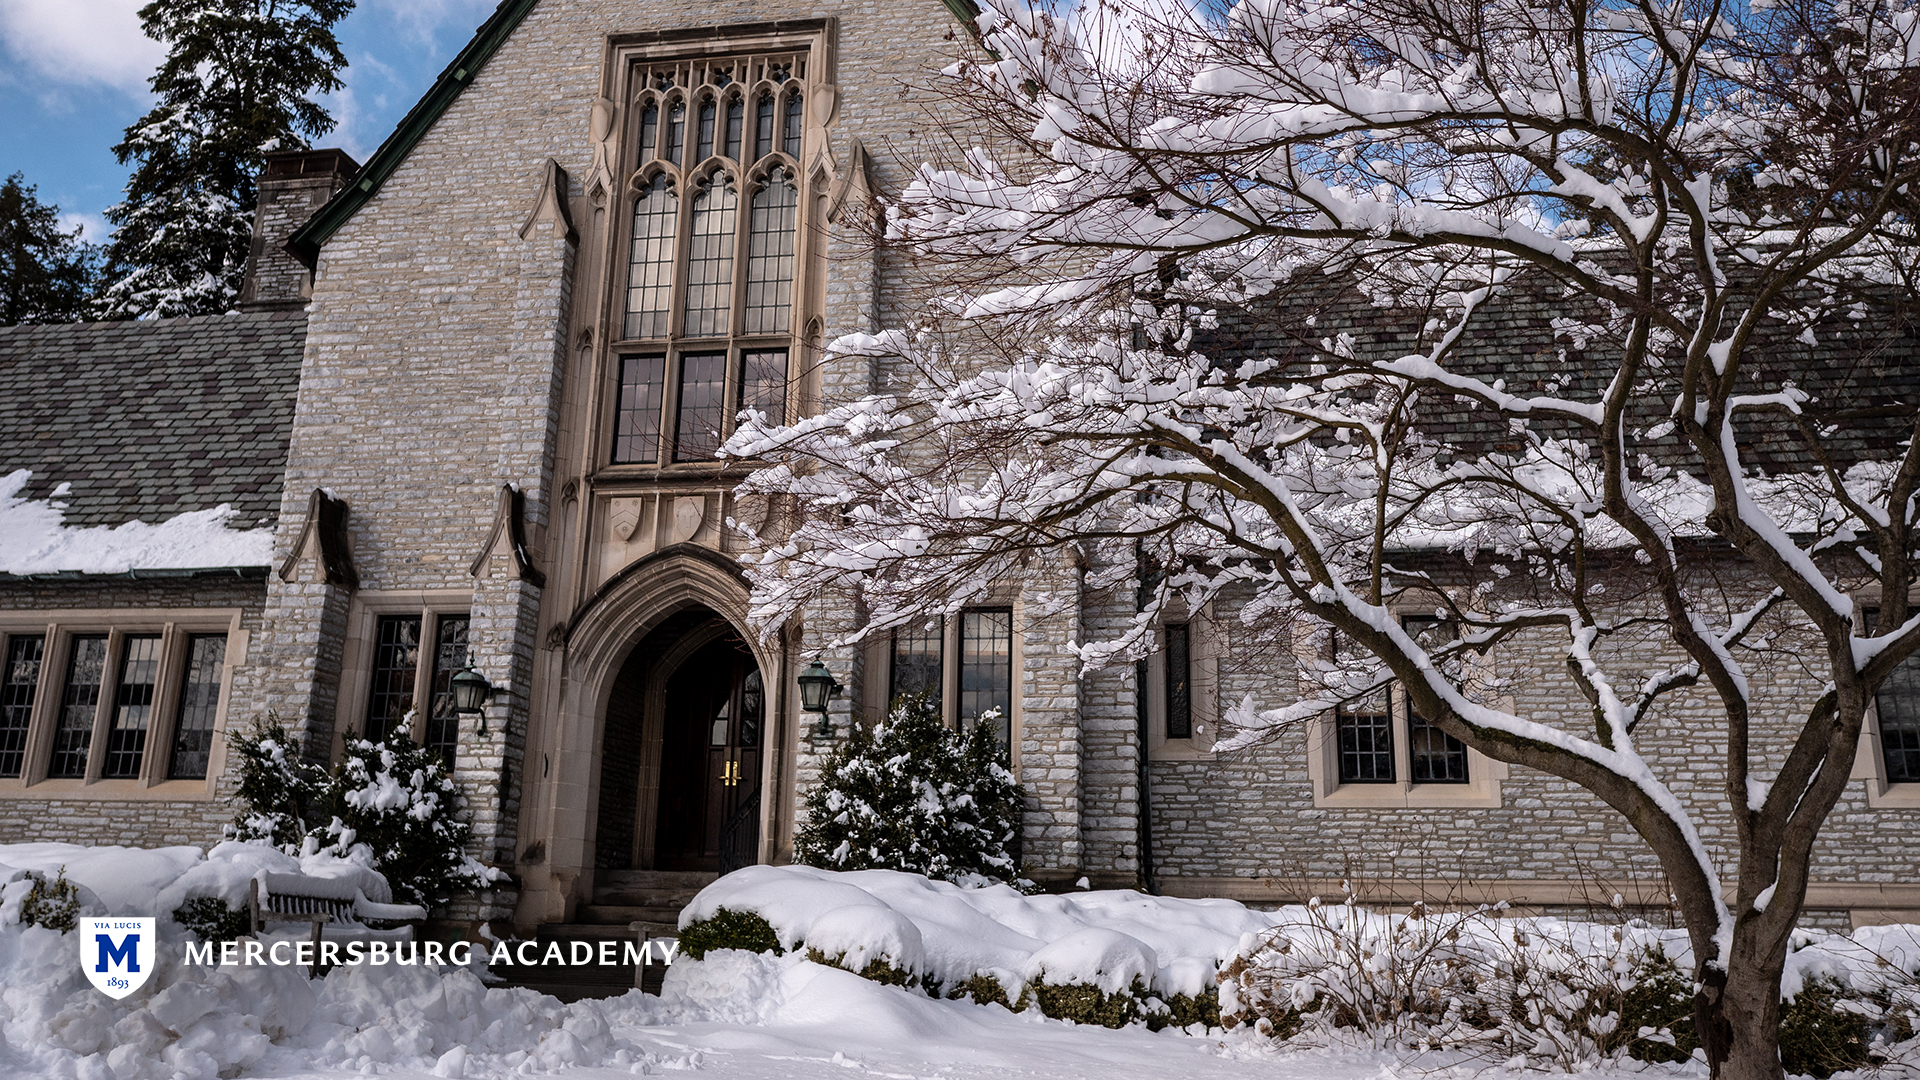 Traylor Hall in the winter at Mercersburg Academy